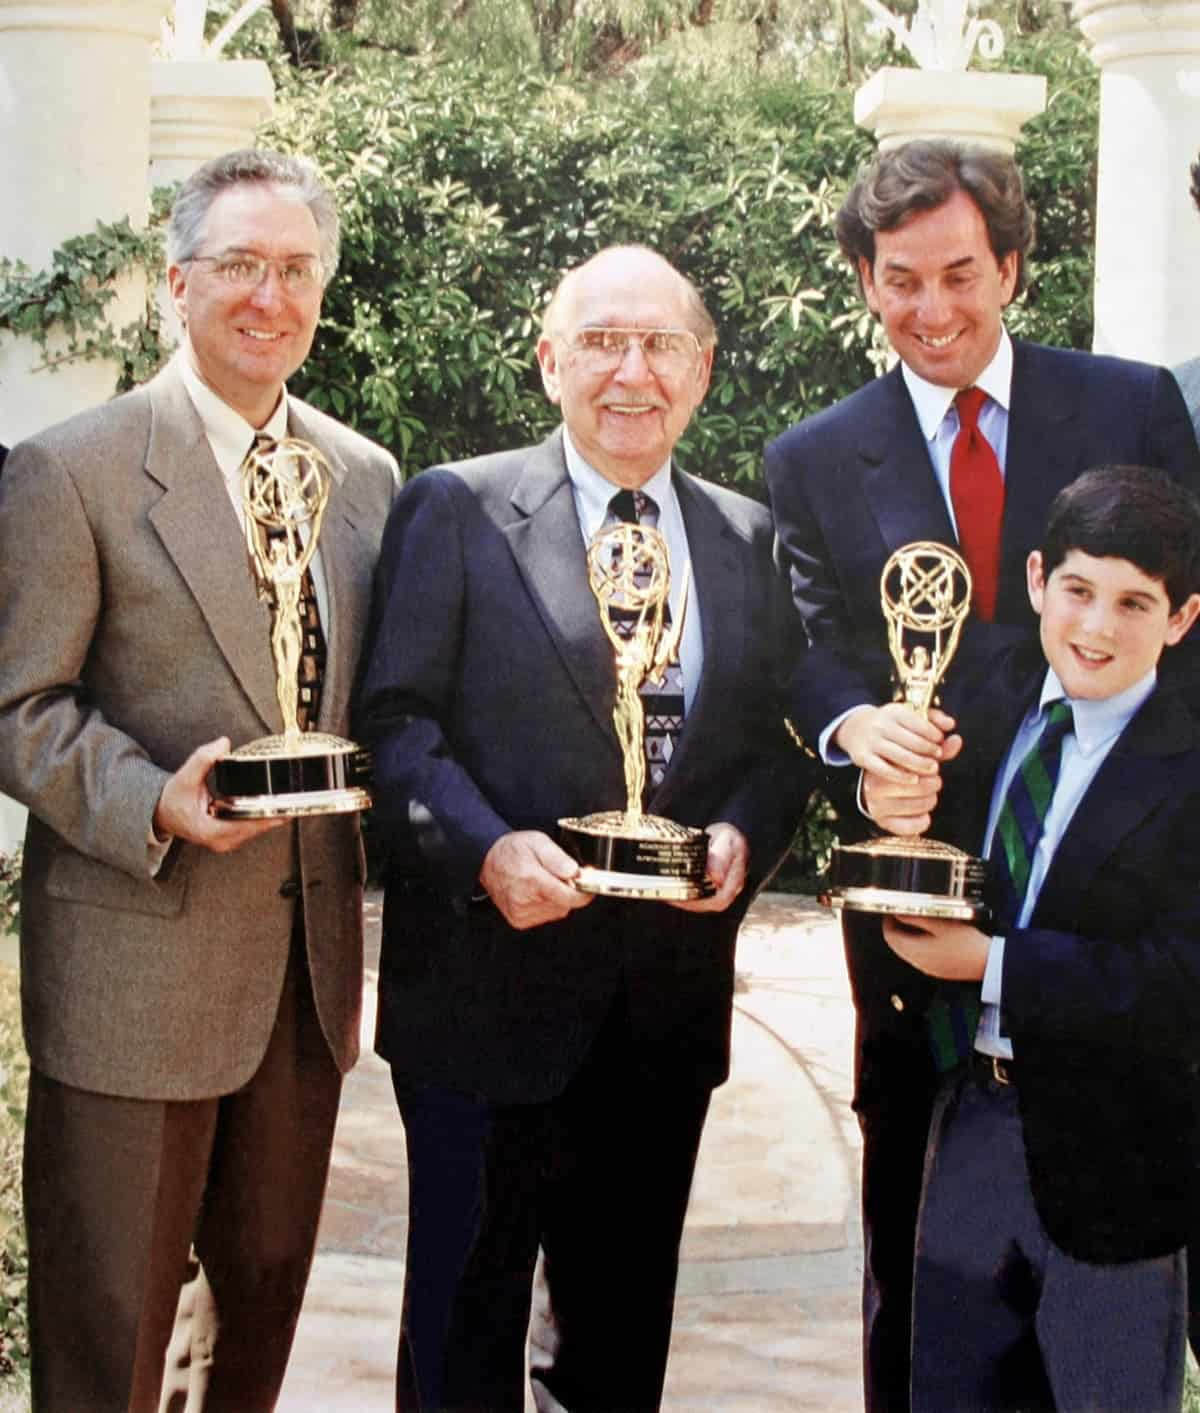 Ira Tiffen, Nat Tiffen, Steven Tiffen & Andrew Tiffen with Emmy Awards